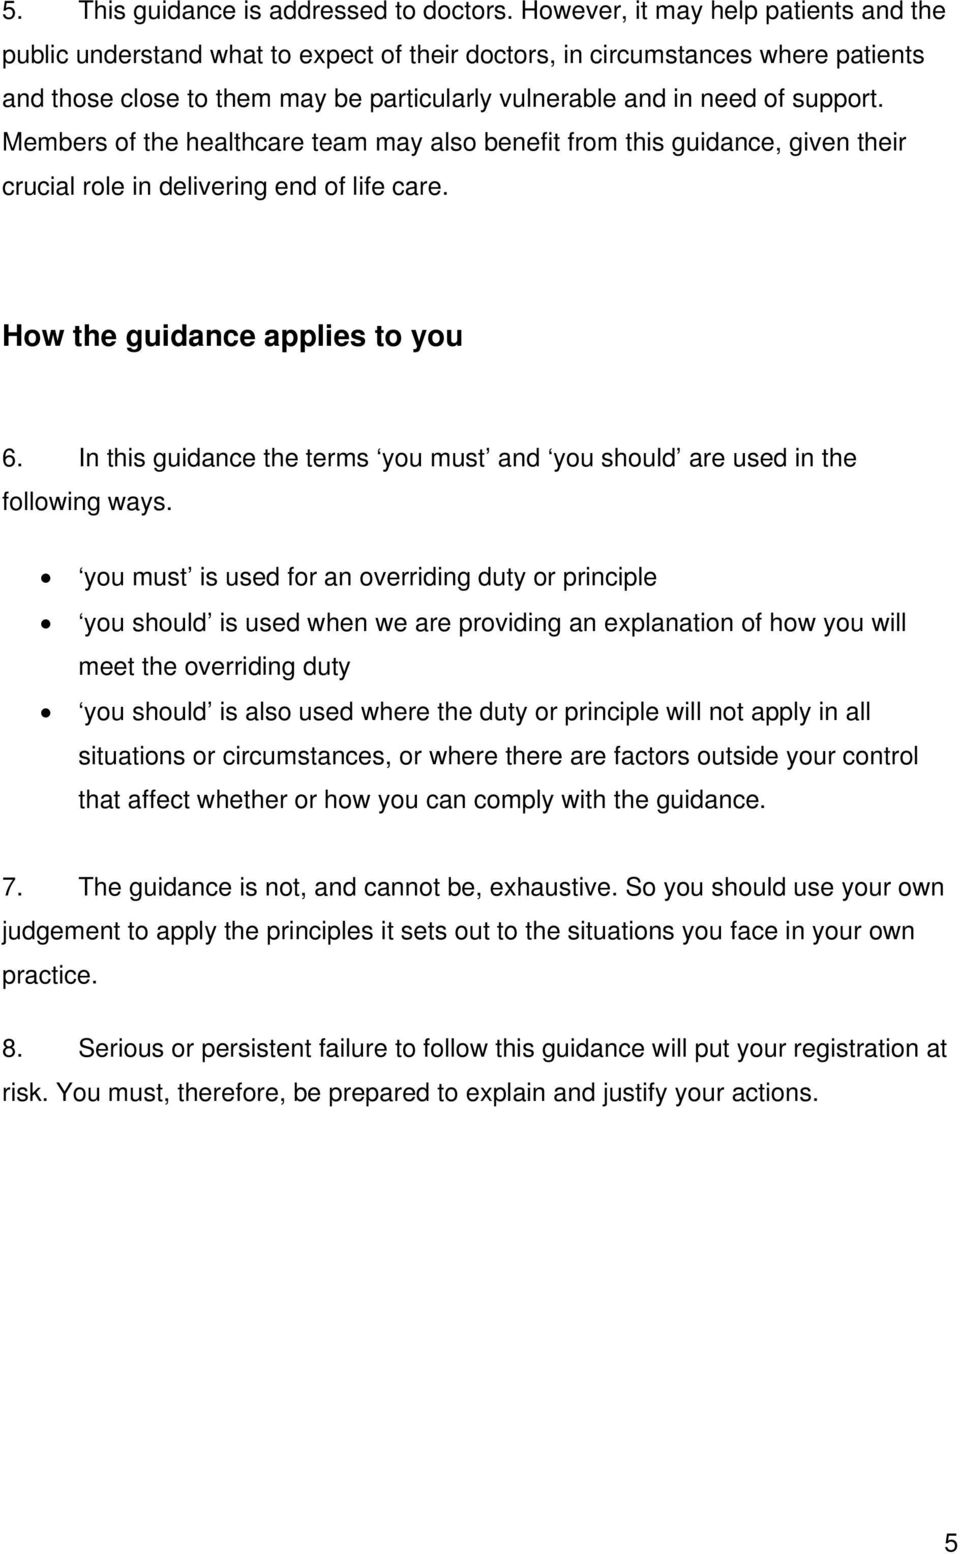 Members of the healthcare team may also benefit from this guidance, given their crucial role in delivering end of life care. How the guidance applies to you 6.